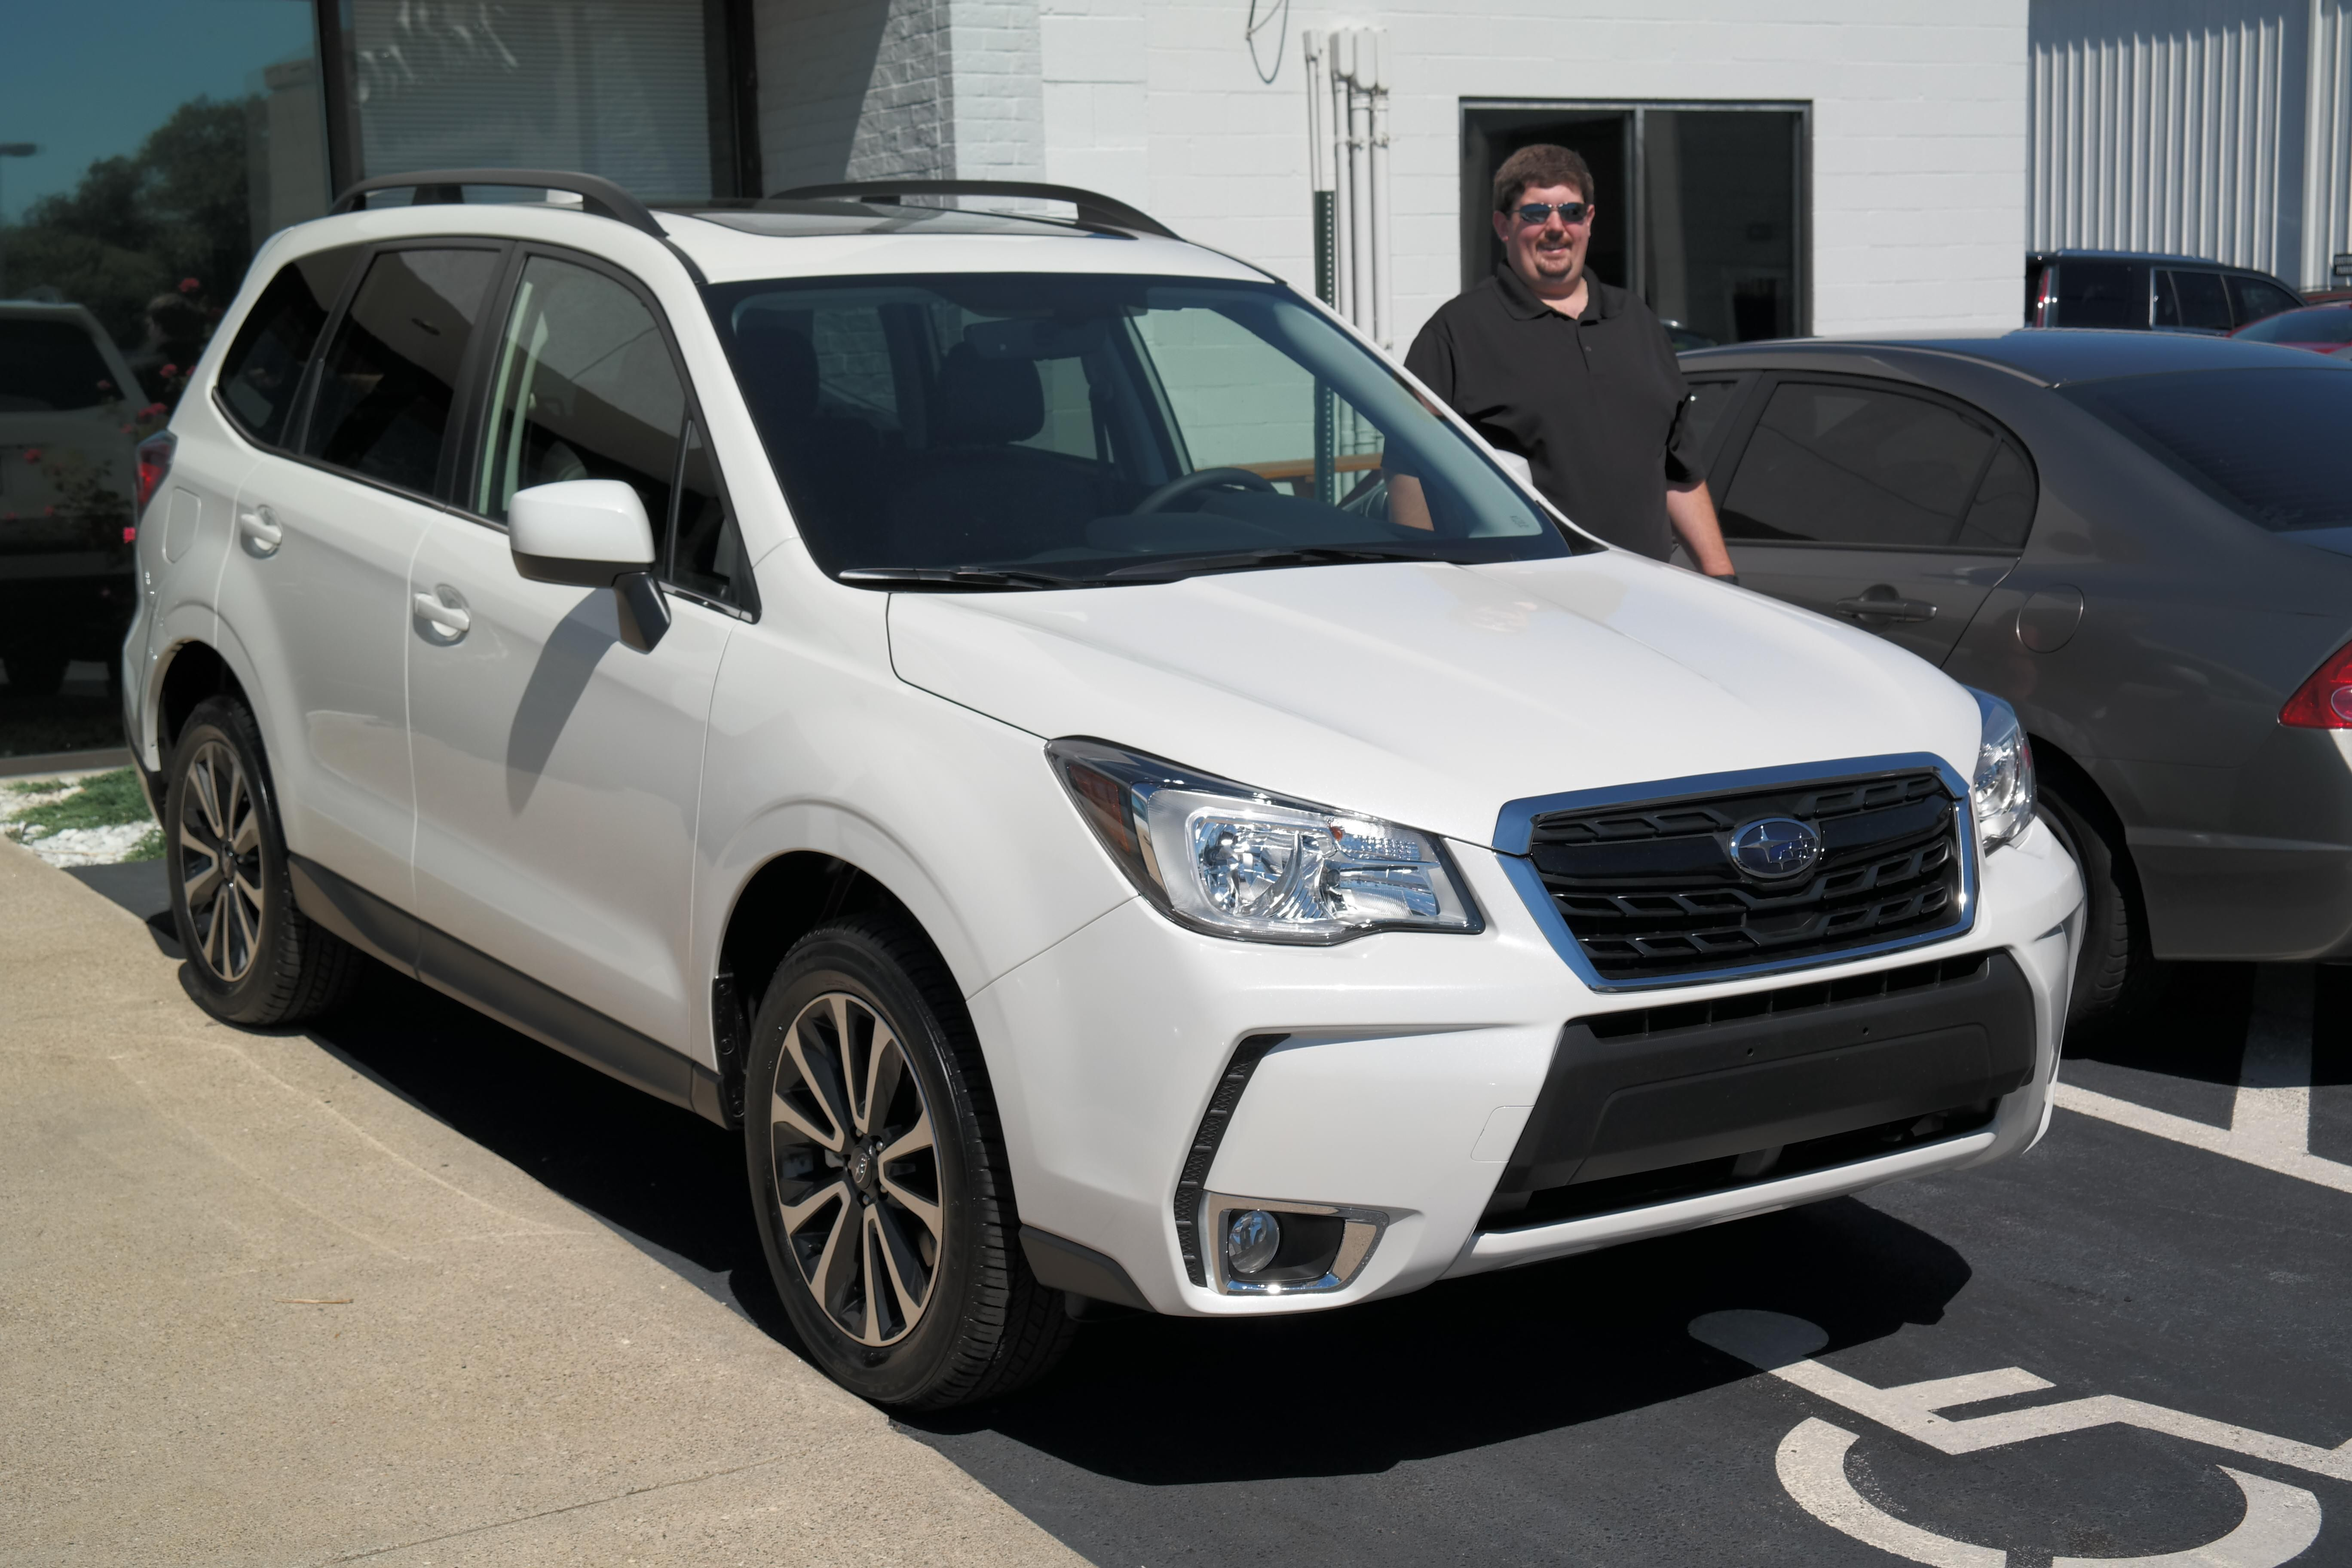 Joined The Club And Picked Up My New 2017 Xt I M In Love Subaru Wrx Sti Impreza Forester Subie Subaru Forester Subaru Impreza